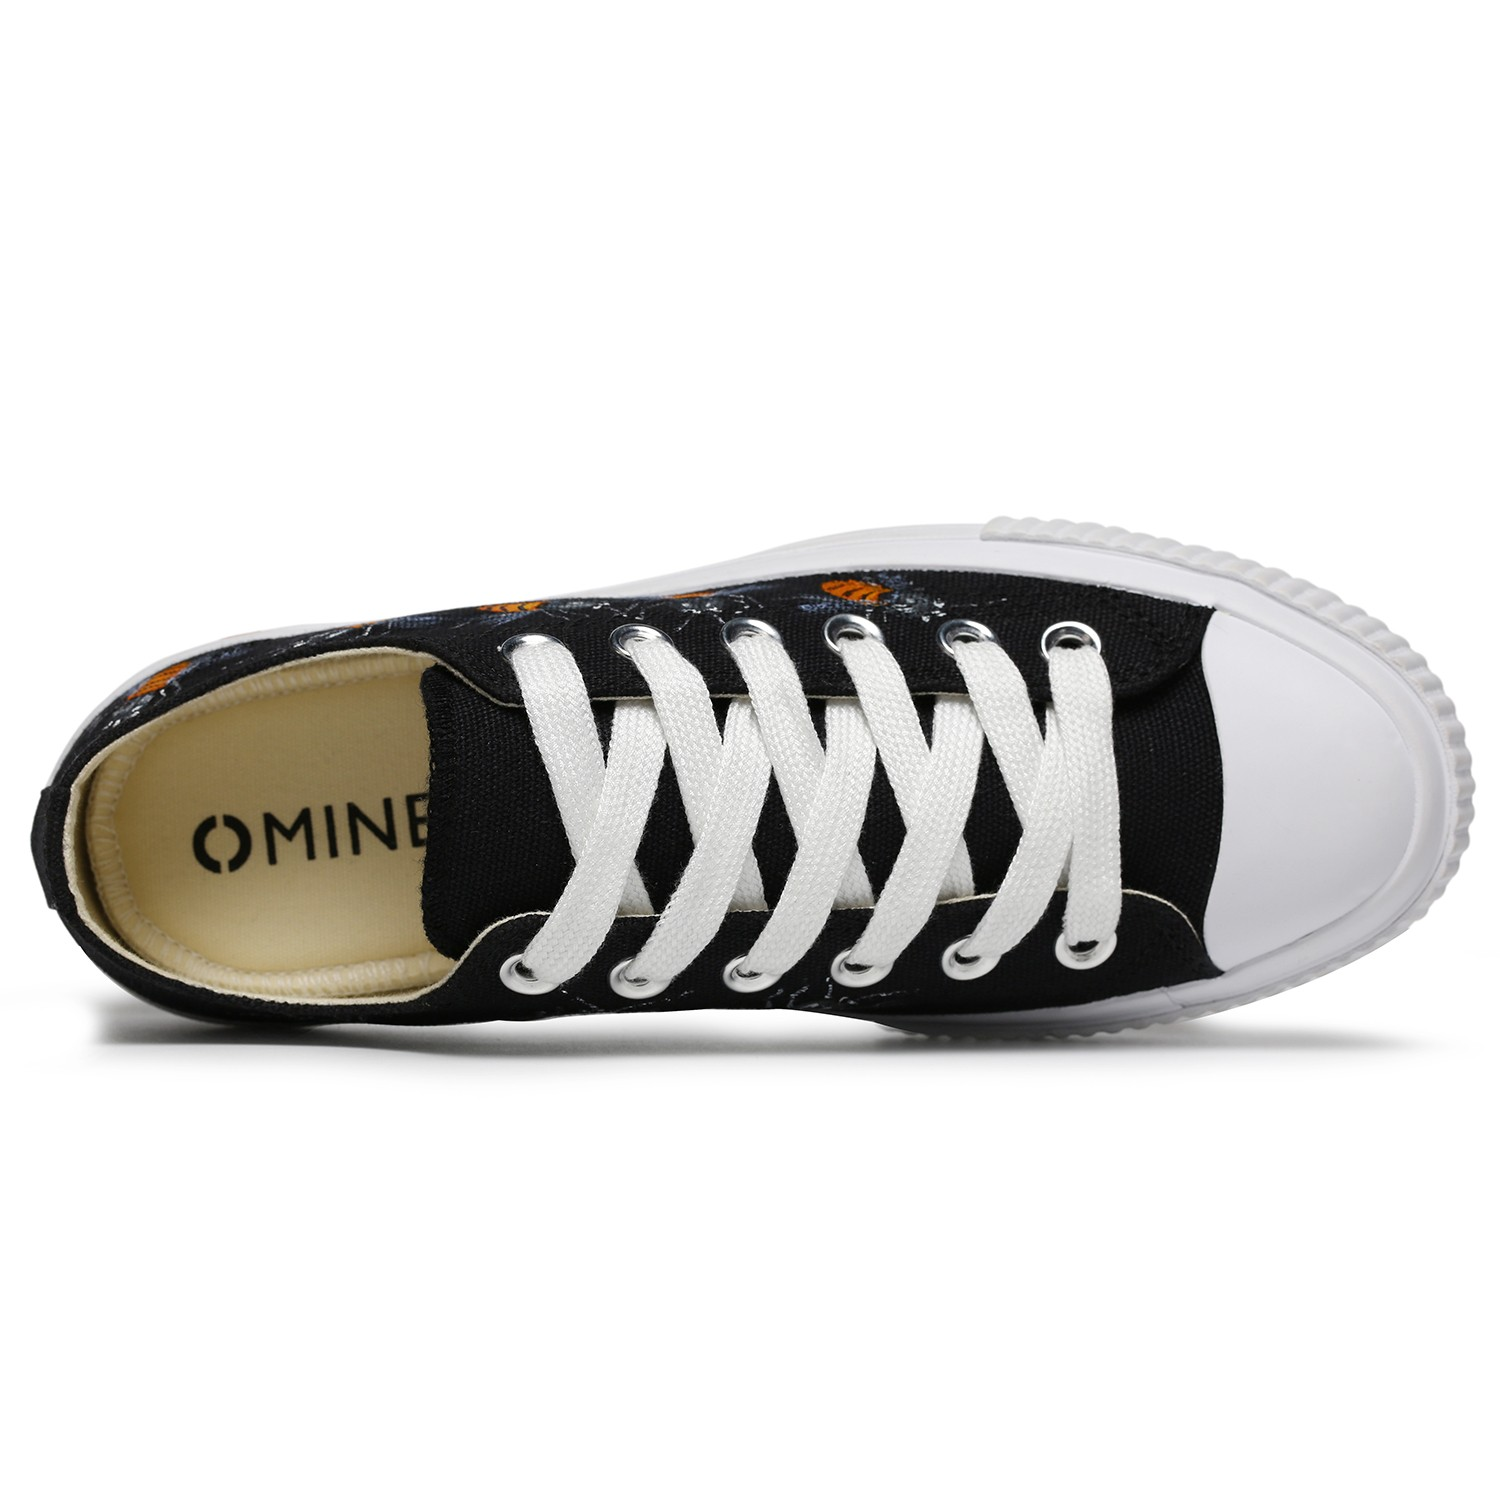 Omine WP2001 Flat Shoes Men Painted Shoes Creative Fashion Comfortable - Black US 11